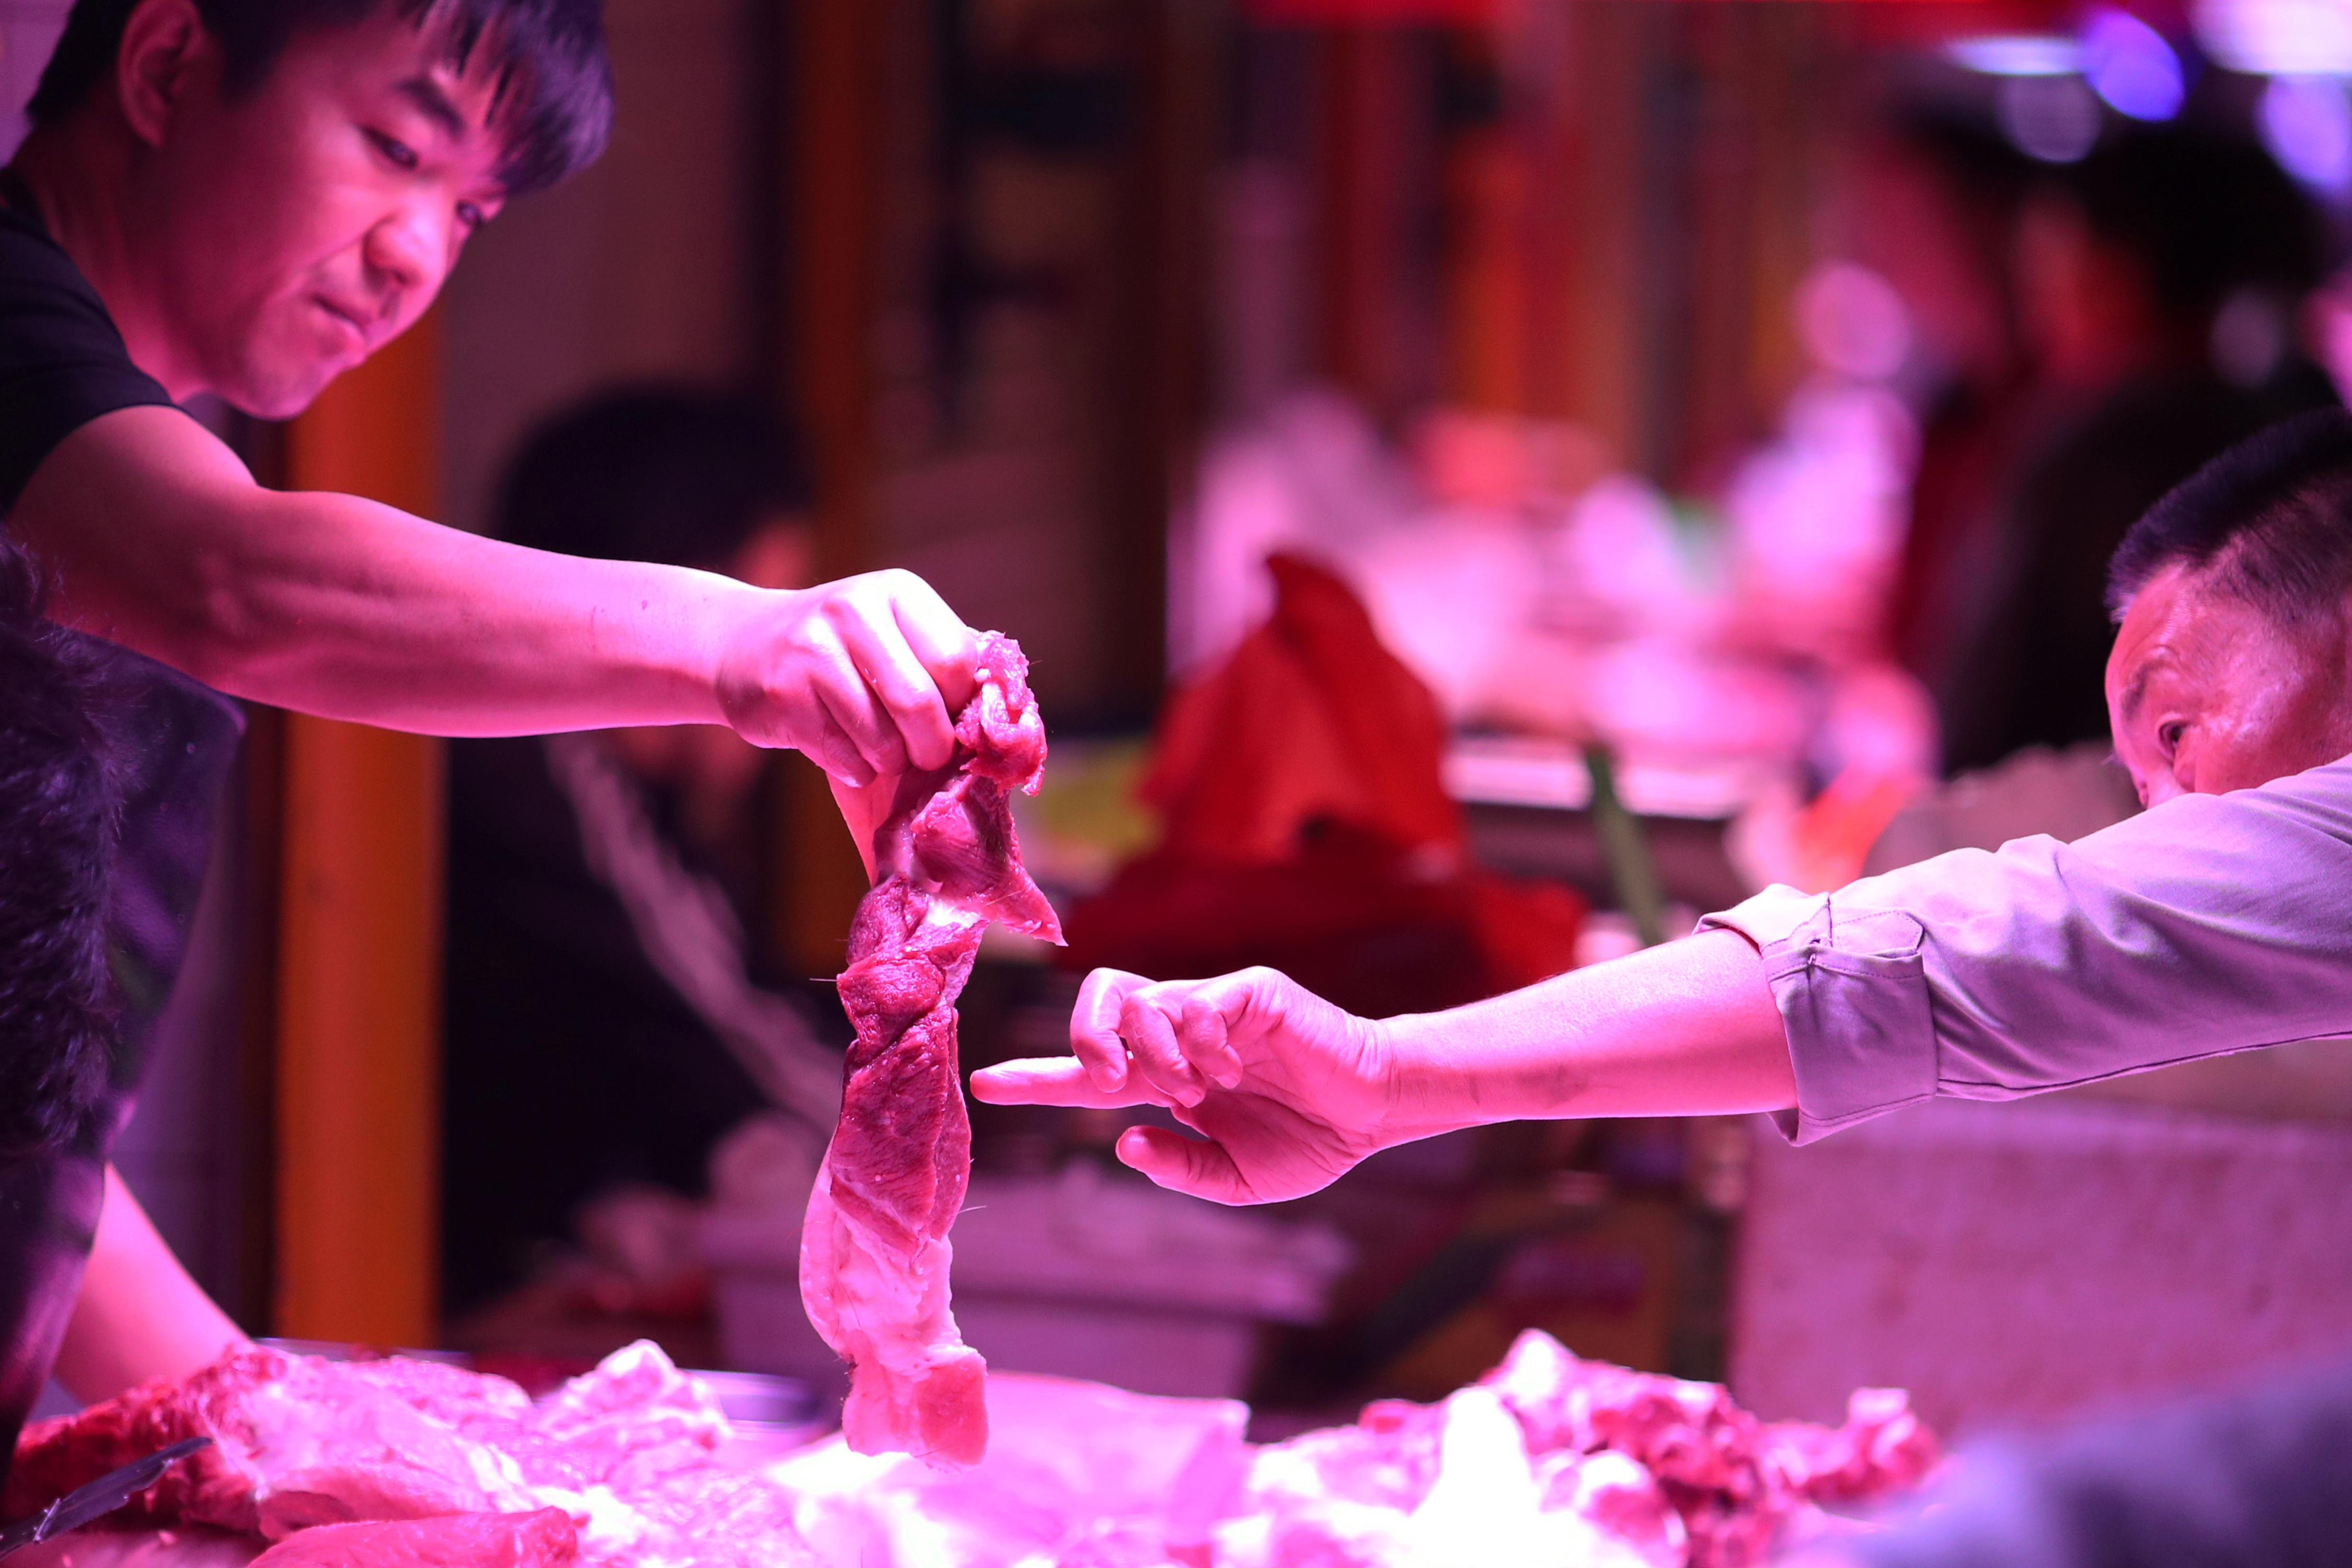 China says pork supply will be enough for upcoming holidays